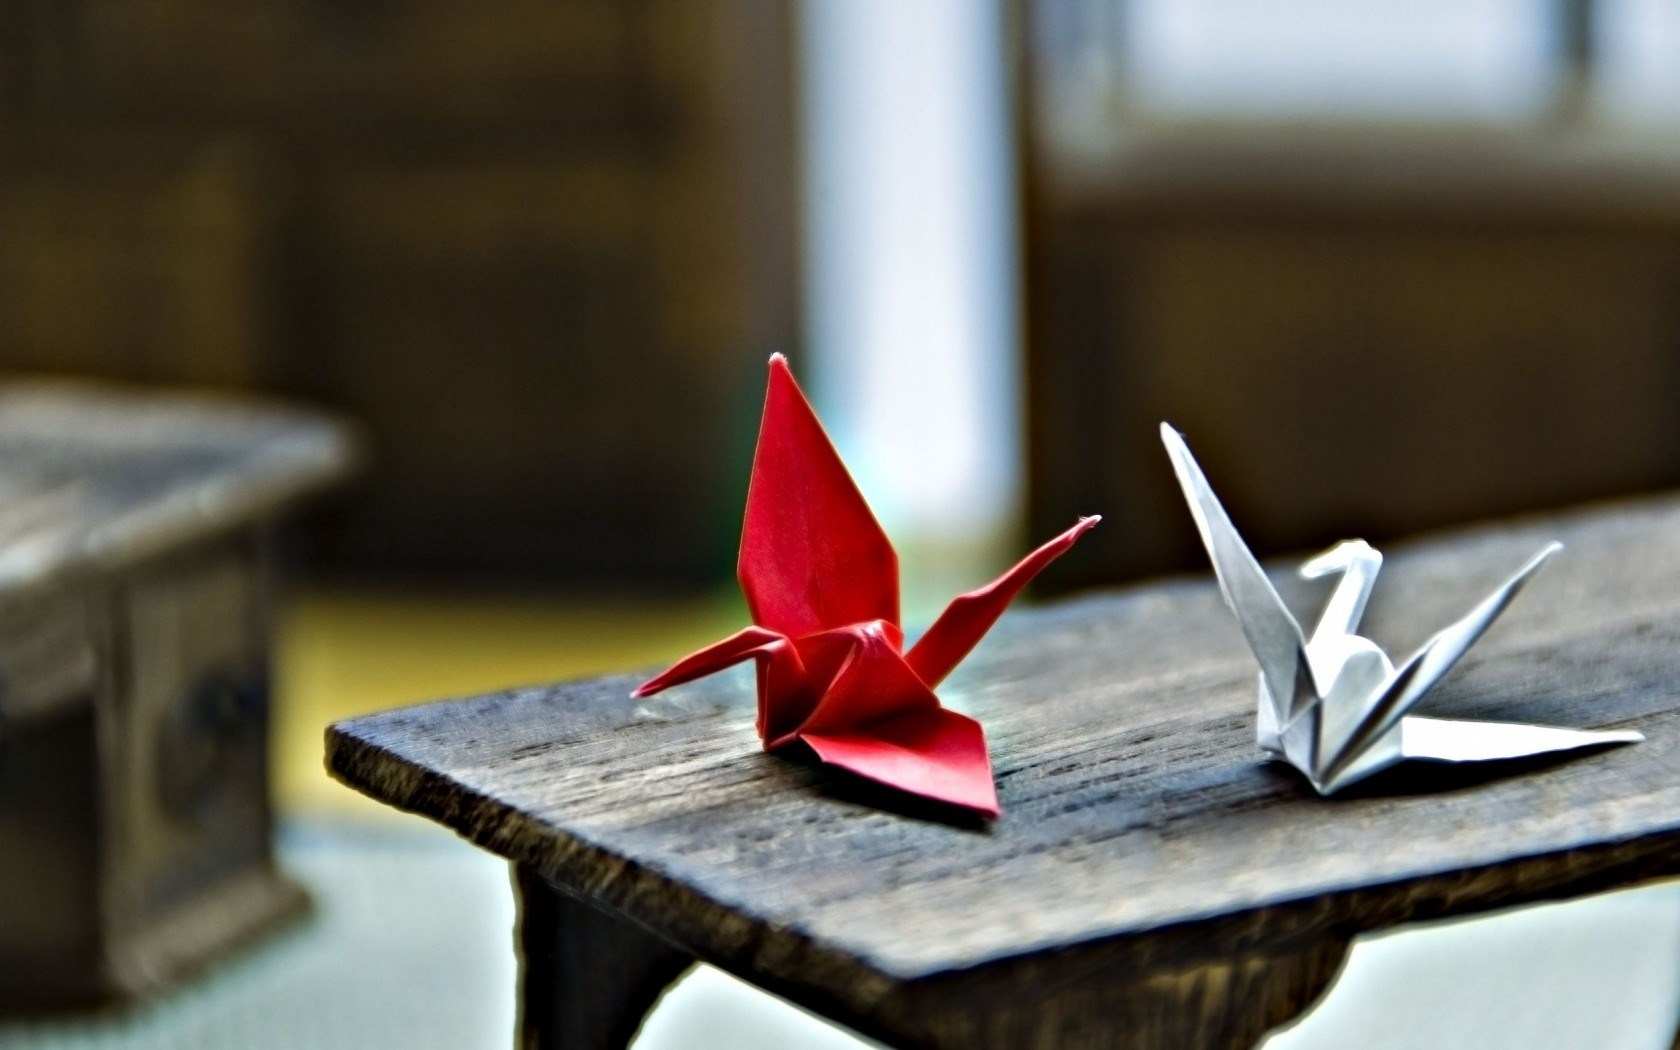 21 Lovely Hd Origami Wallpapers Hdwallsource Com HD Wallpapers Download Free Images Wallpaper [1000image.com]